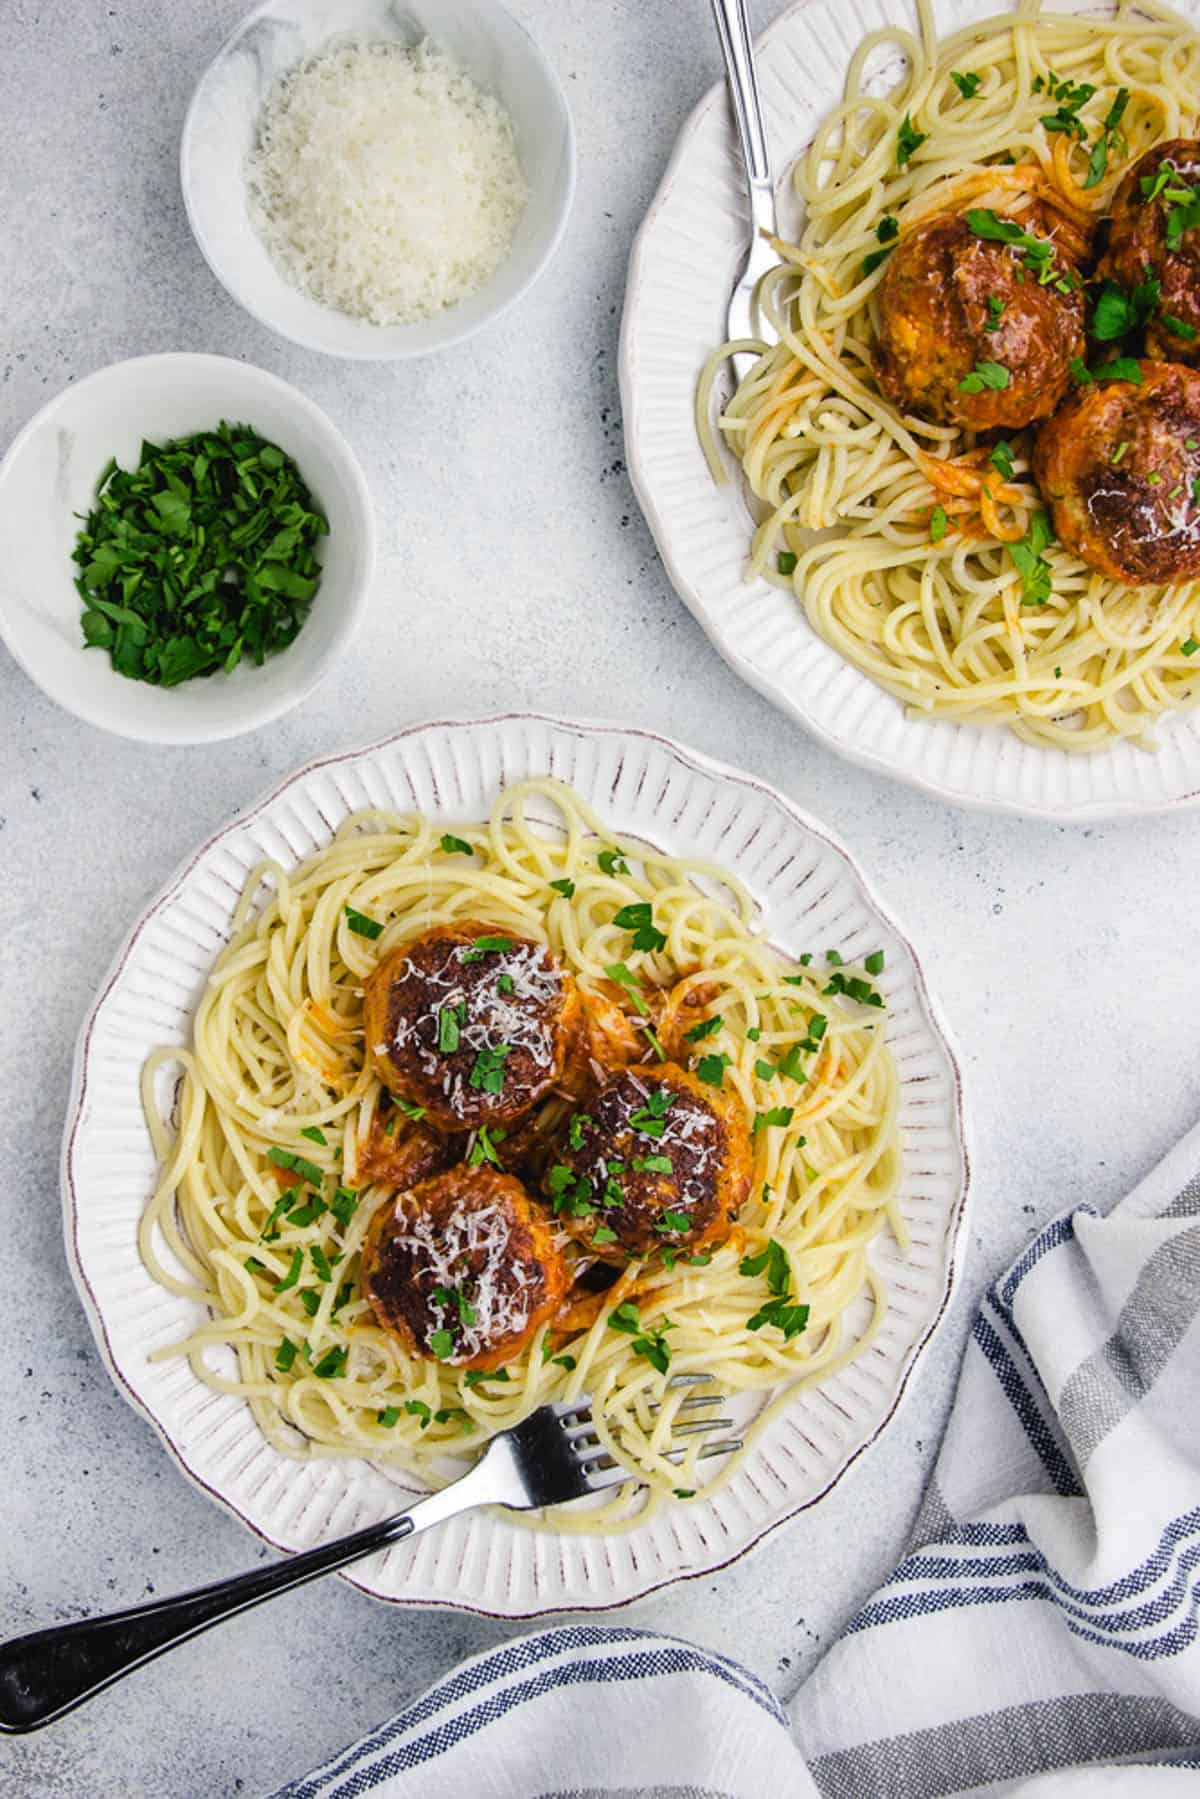 Turkey meatballs, served with spaghetti on a white plate.